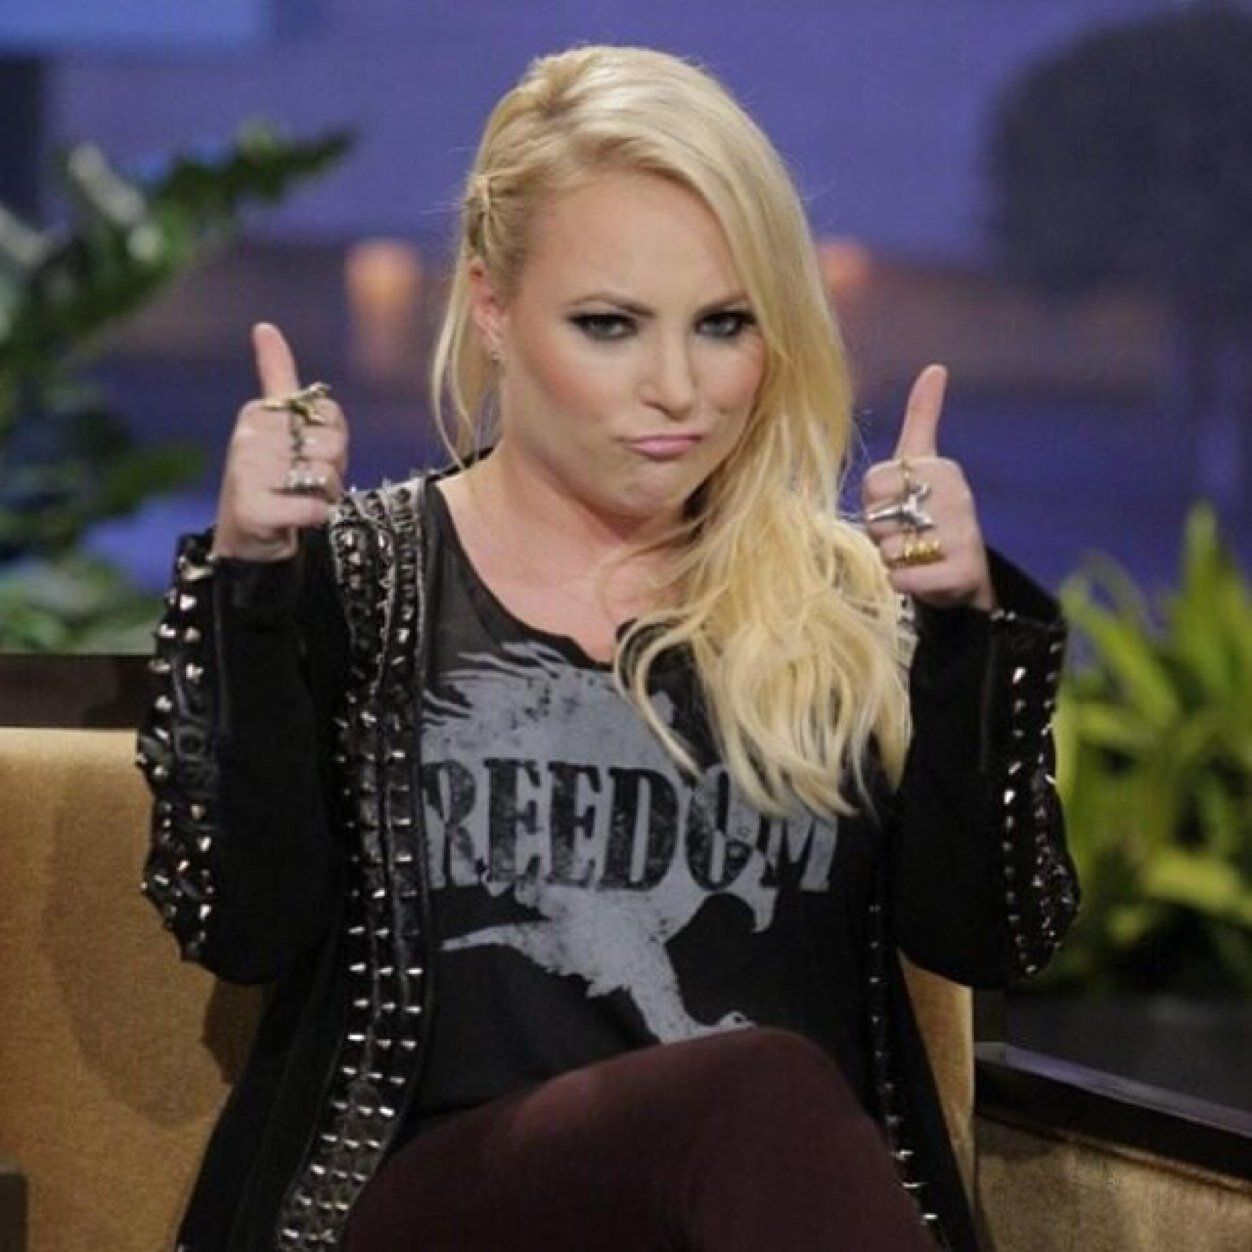 Meghan Mccain Snaps At Joy Behar On The View After Fox: Meghan-mccain.jpeg (1252×1252)